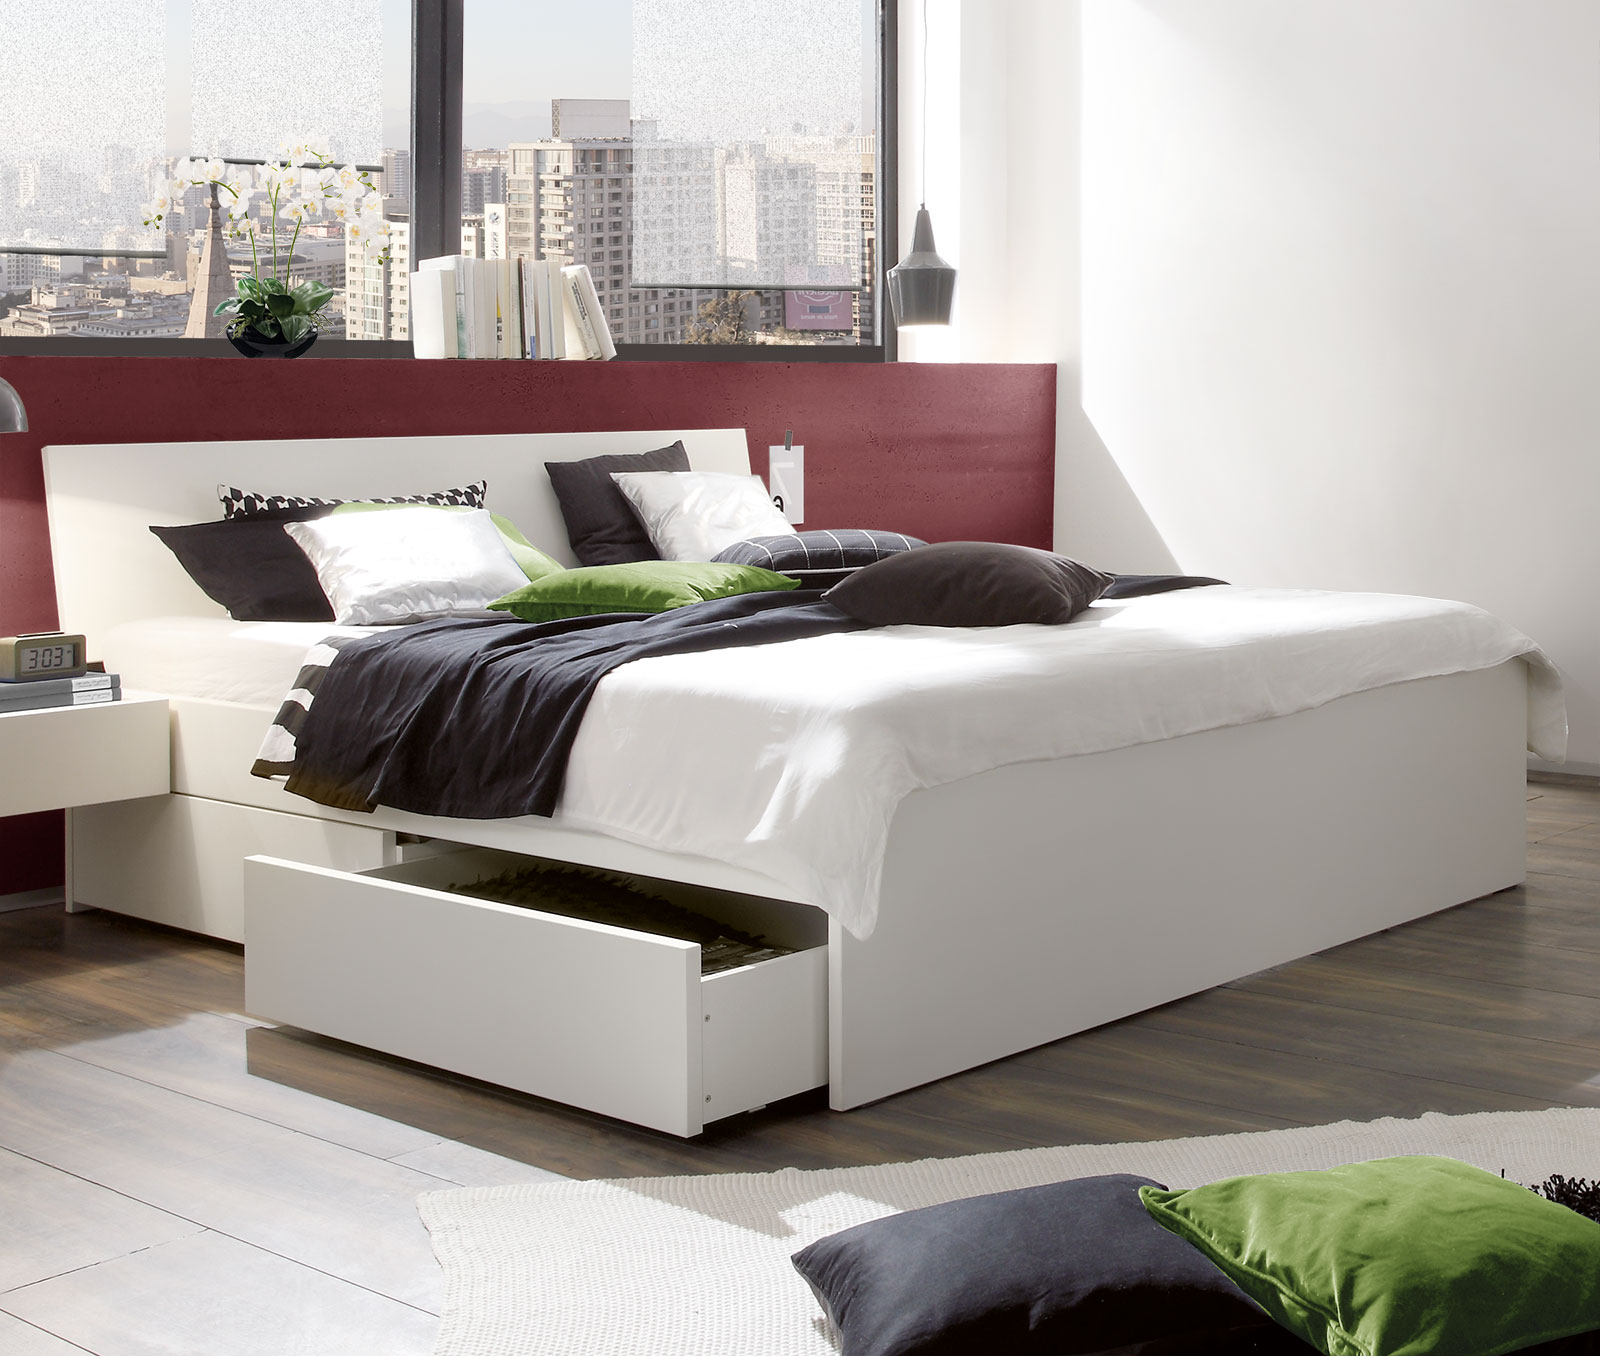 100 bett mit bettkasten in braun dreams4home. Black Bedroom Furniture Sets. Home Design Ideas